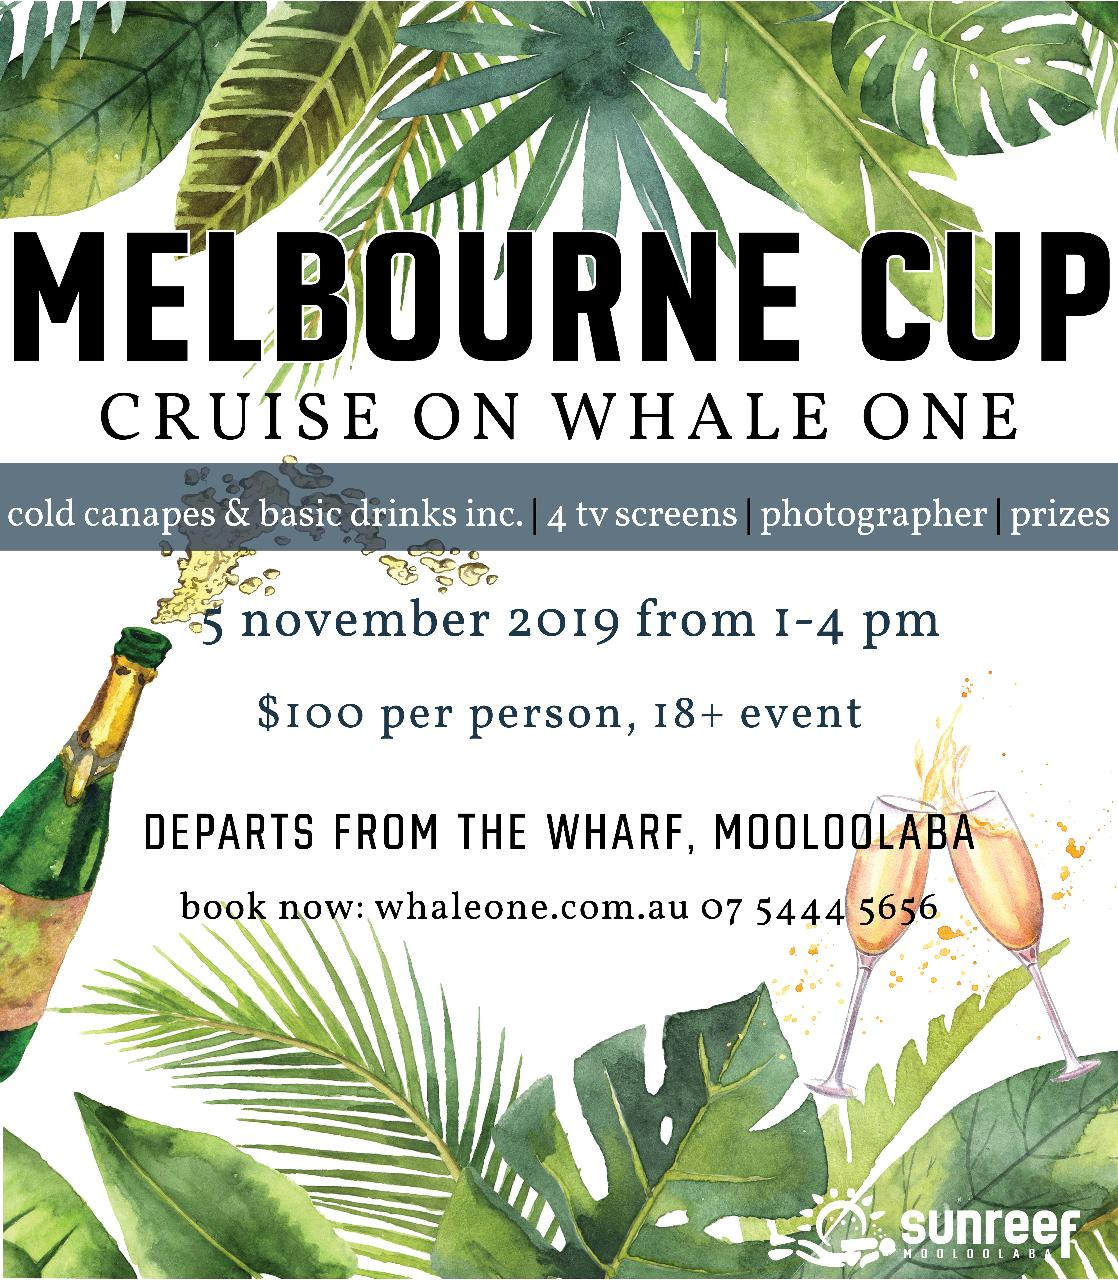 Melbourne Cup Cruise on Whale One